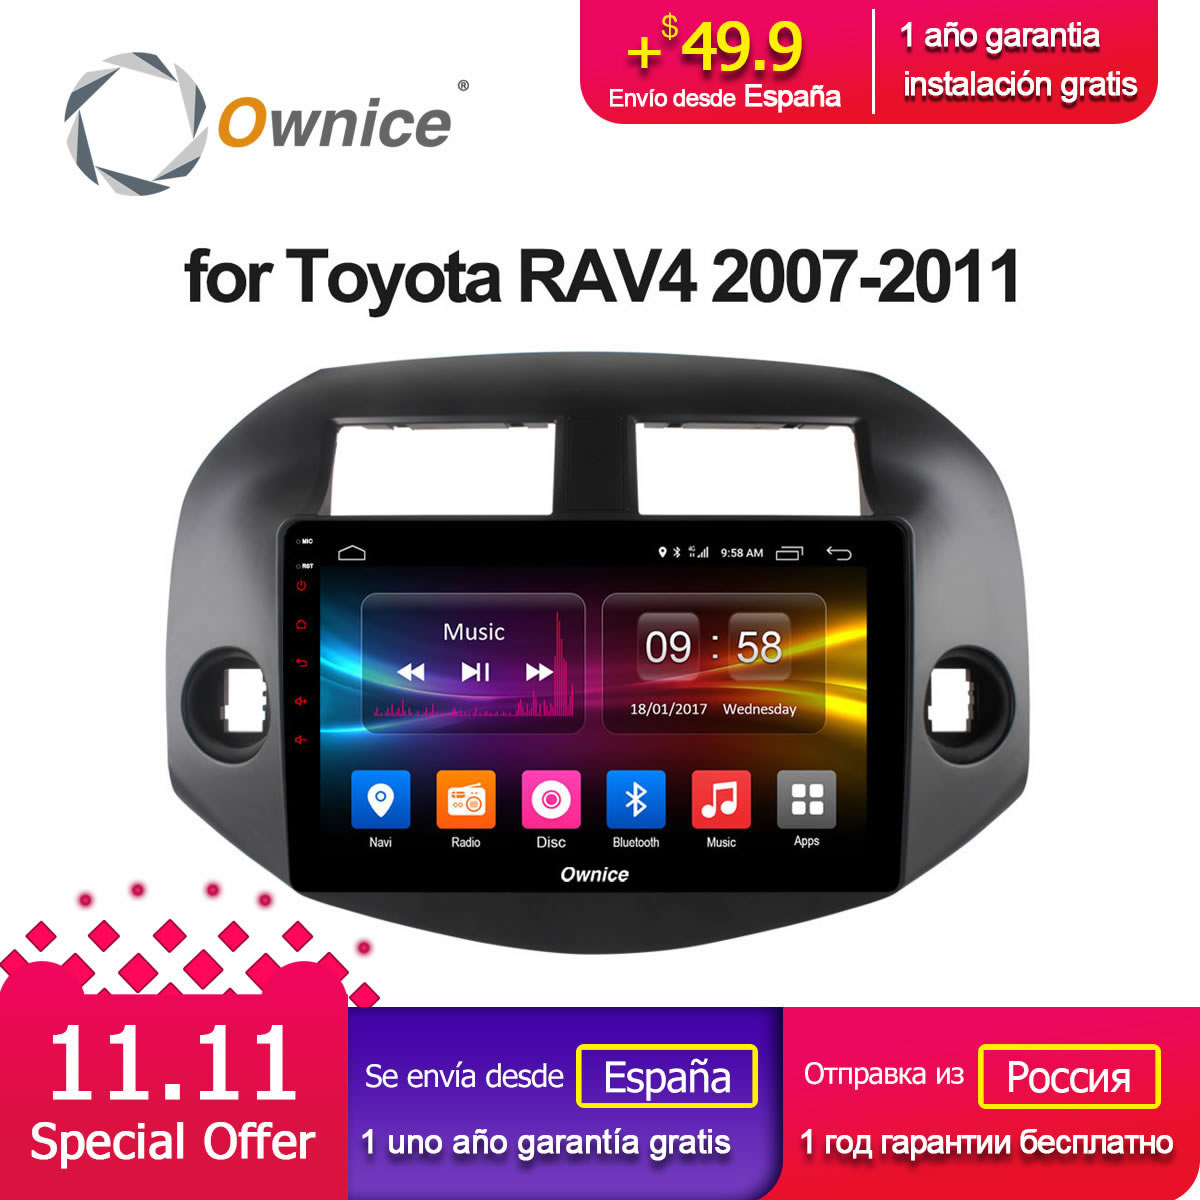 Ownice C500 + G10 Android 8.1 Octa base 10.1 Voiture Radio Stéréo Lecteur GPS Pour TOYOTA RAV4 2007 2008 2009 2010 2011 2g RAM 32g ROM